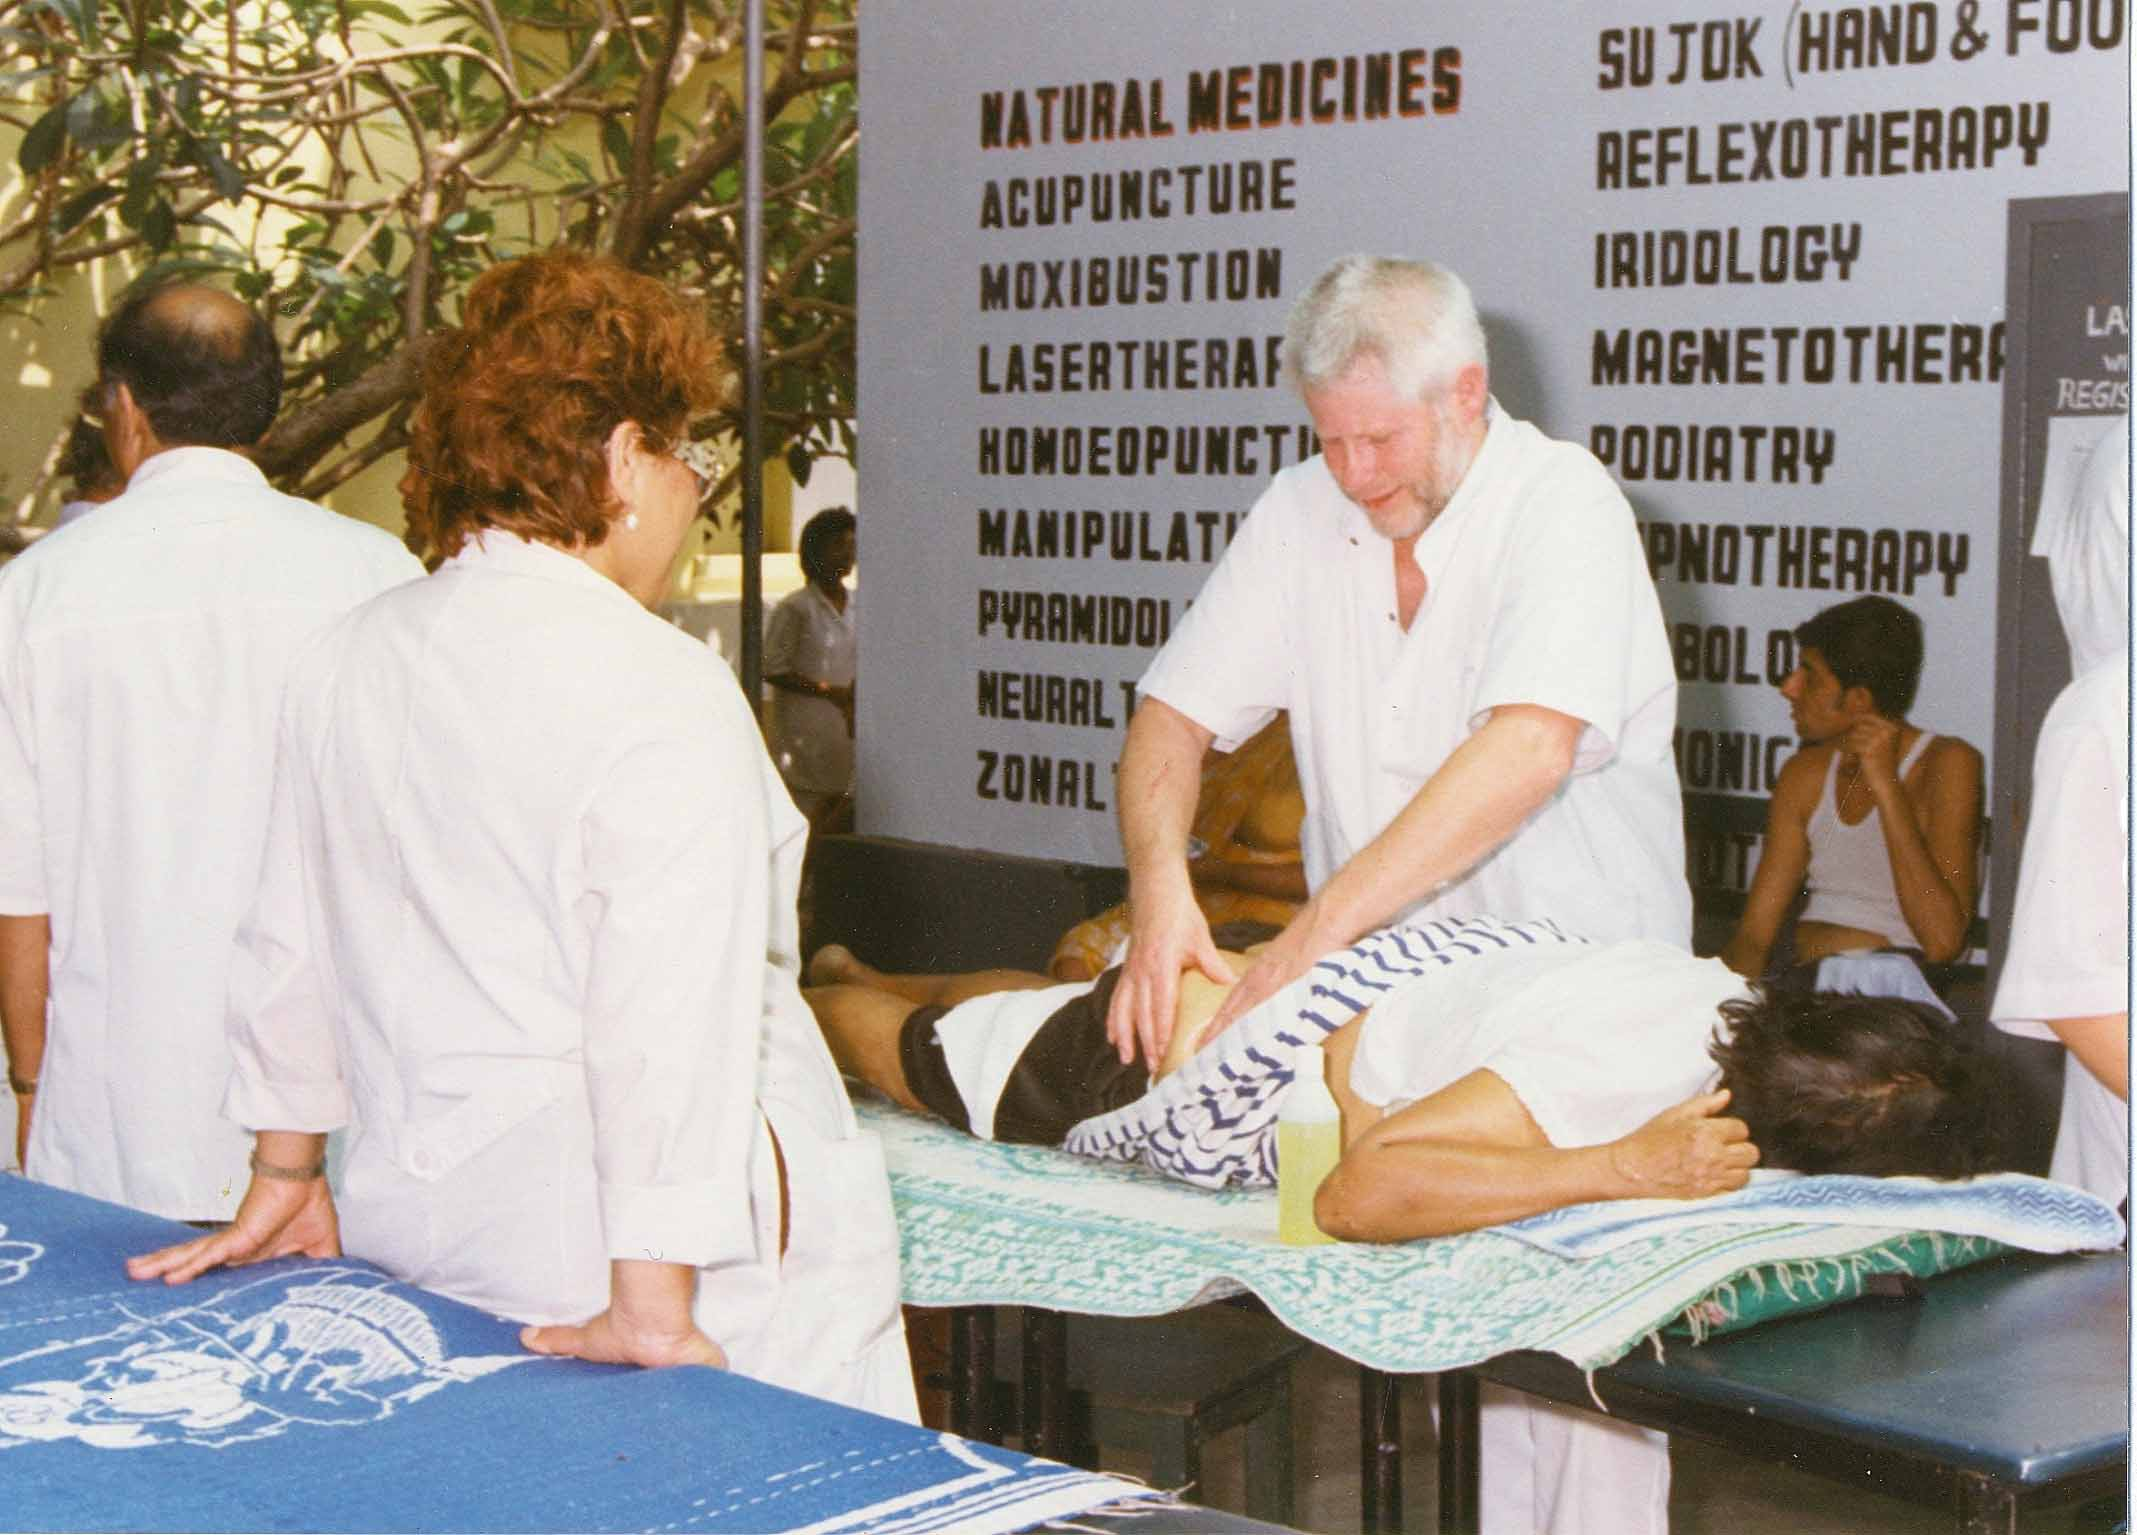 Massage met Reumedica in Sri Lanka.